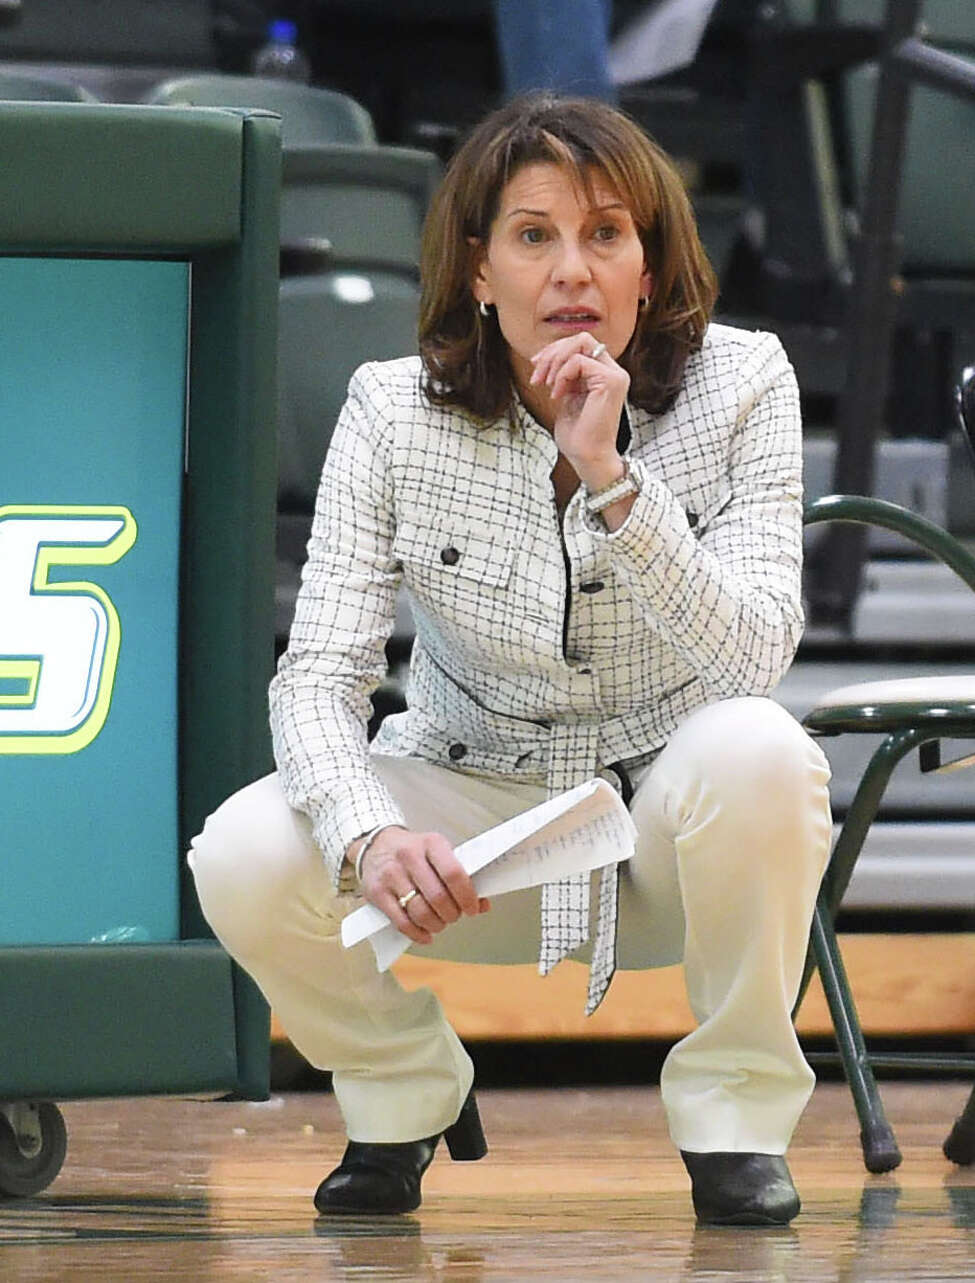 Gina Castelli, the former Siena College head coach who is now in her 6th season at Le Moyne, has relied on a trio of Capital Region players in this, her best season, at the Division II level. Her team won the Northeast-10 Conference Championship Sunday and will play in the NCAA Championship starting Friday. (Le Moyne Athletics / Greg Wall)